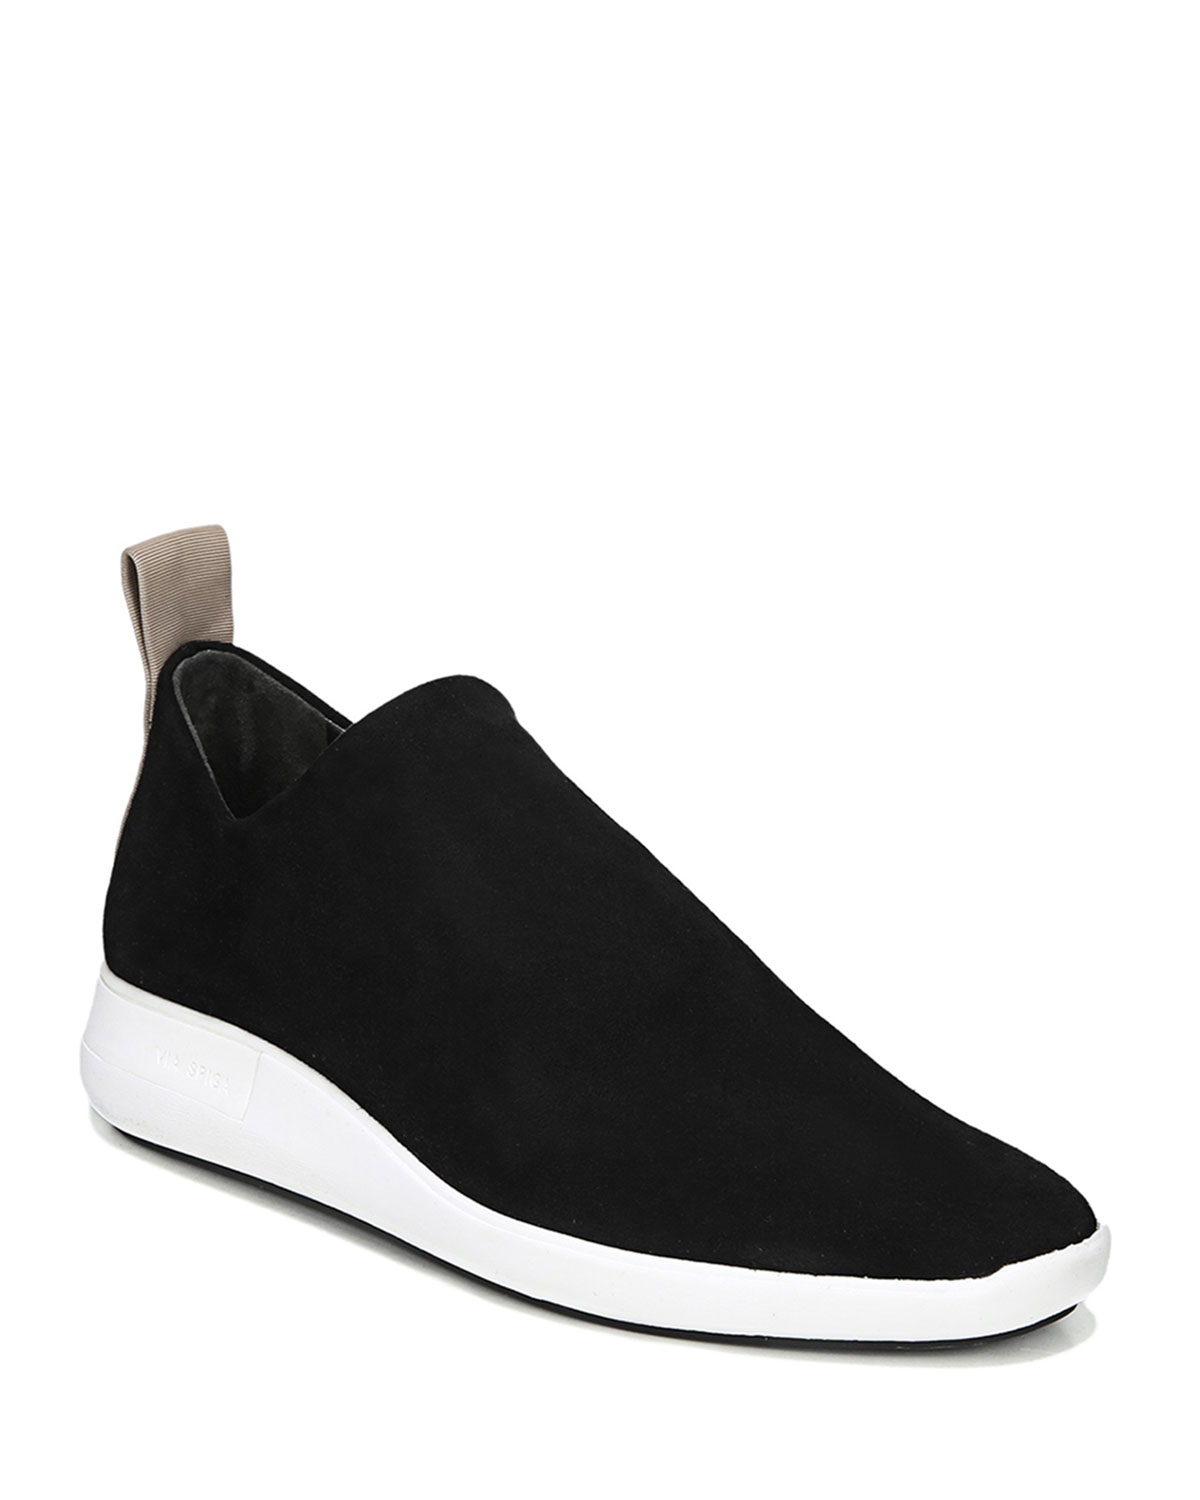 Marlow Sock Flat Sneakers